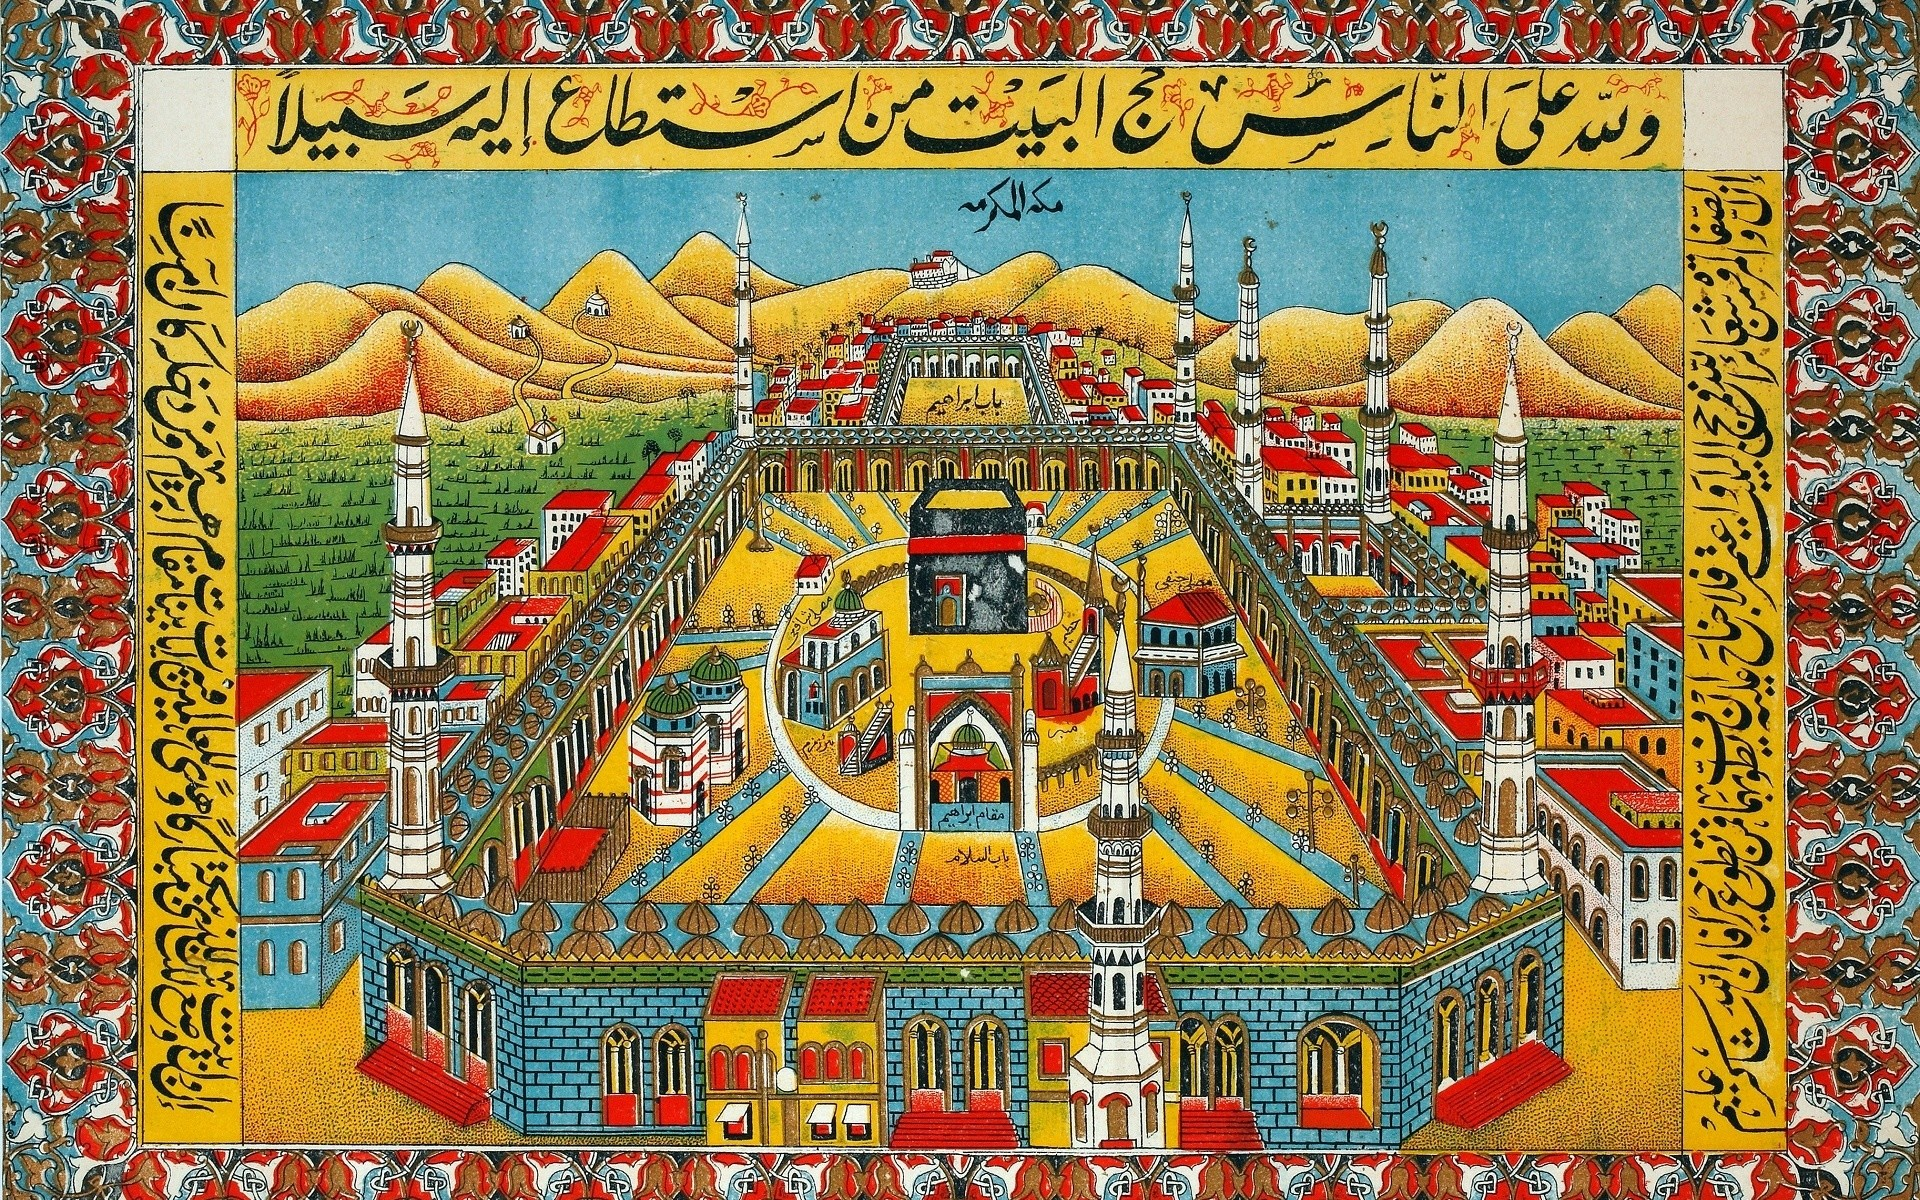 Res: 1920x1200, Arts, Painting, Islam, Mosques, Mecca, Religion, The Holy Sanctuary At